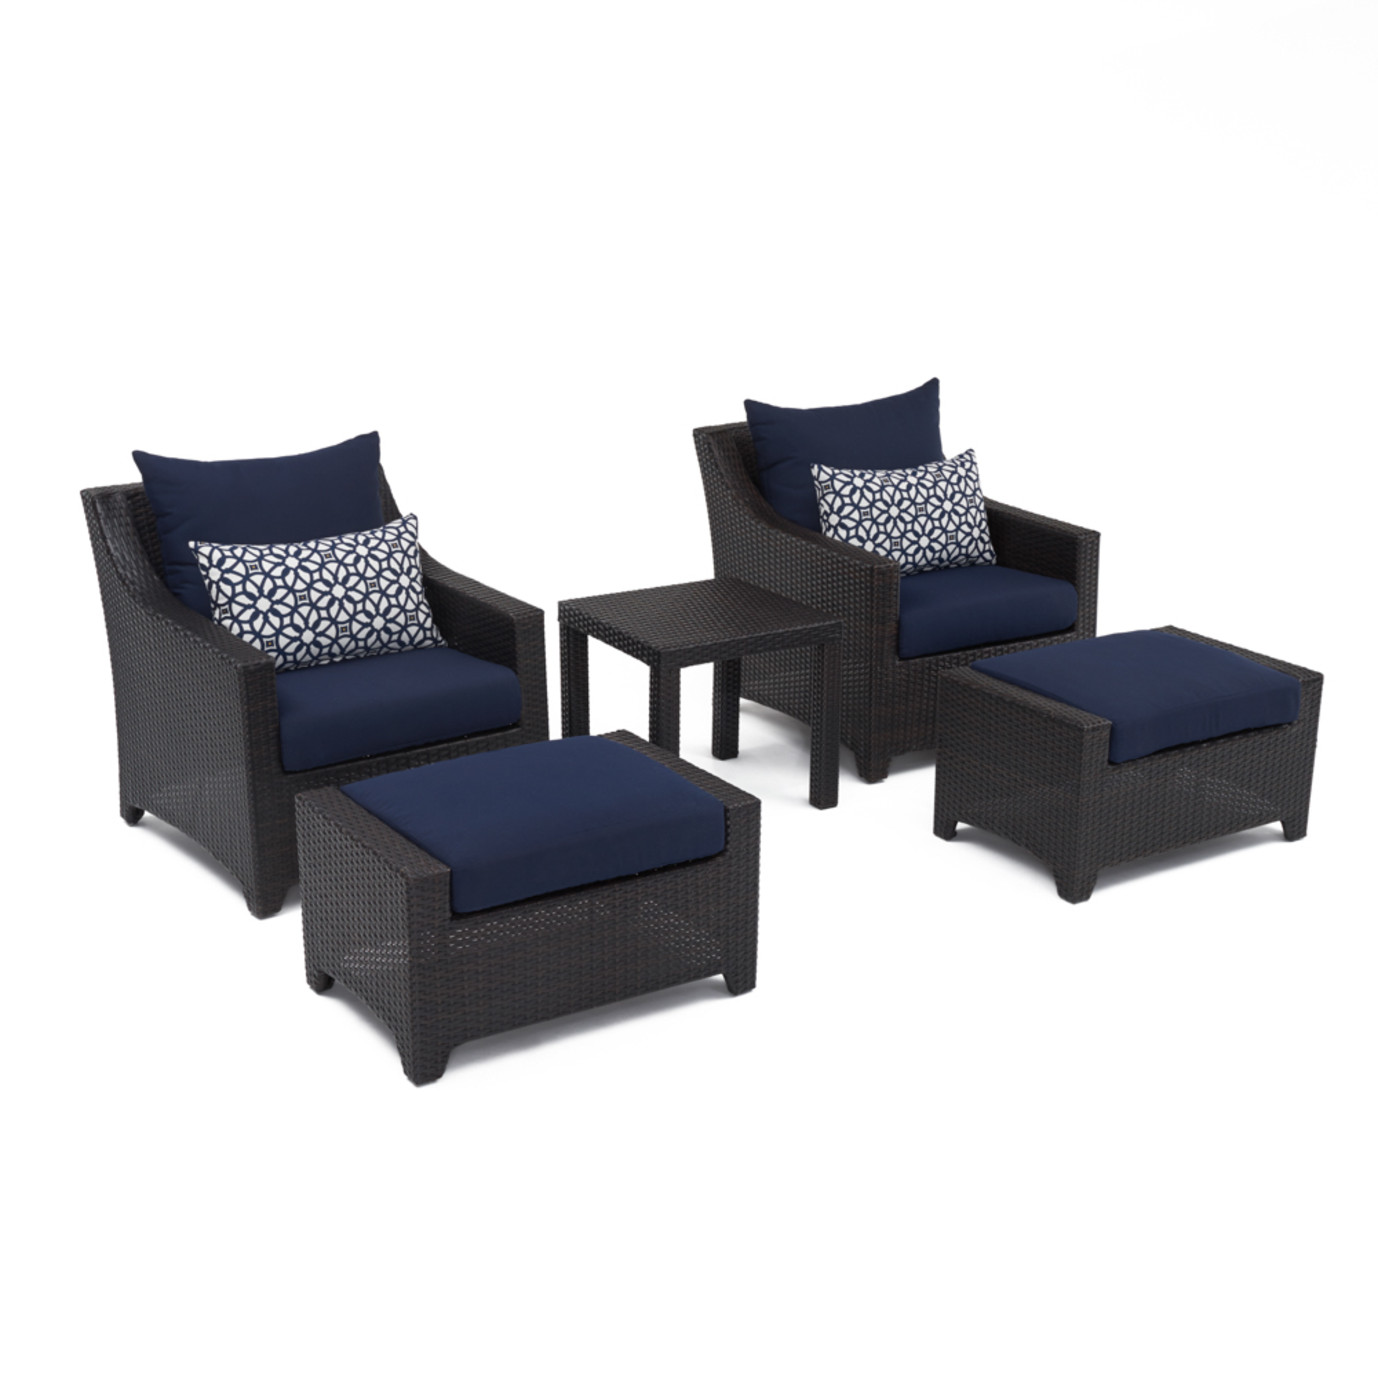 Deco™ 20pc Outdoor Estate Set - Navy Blue